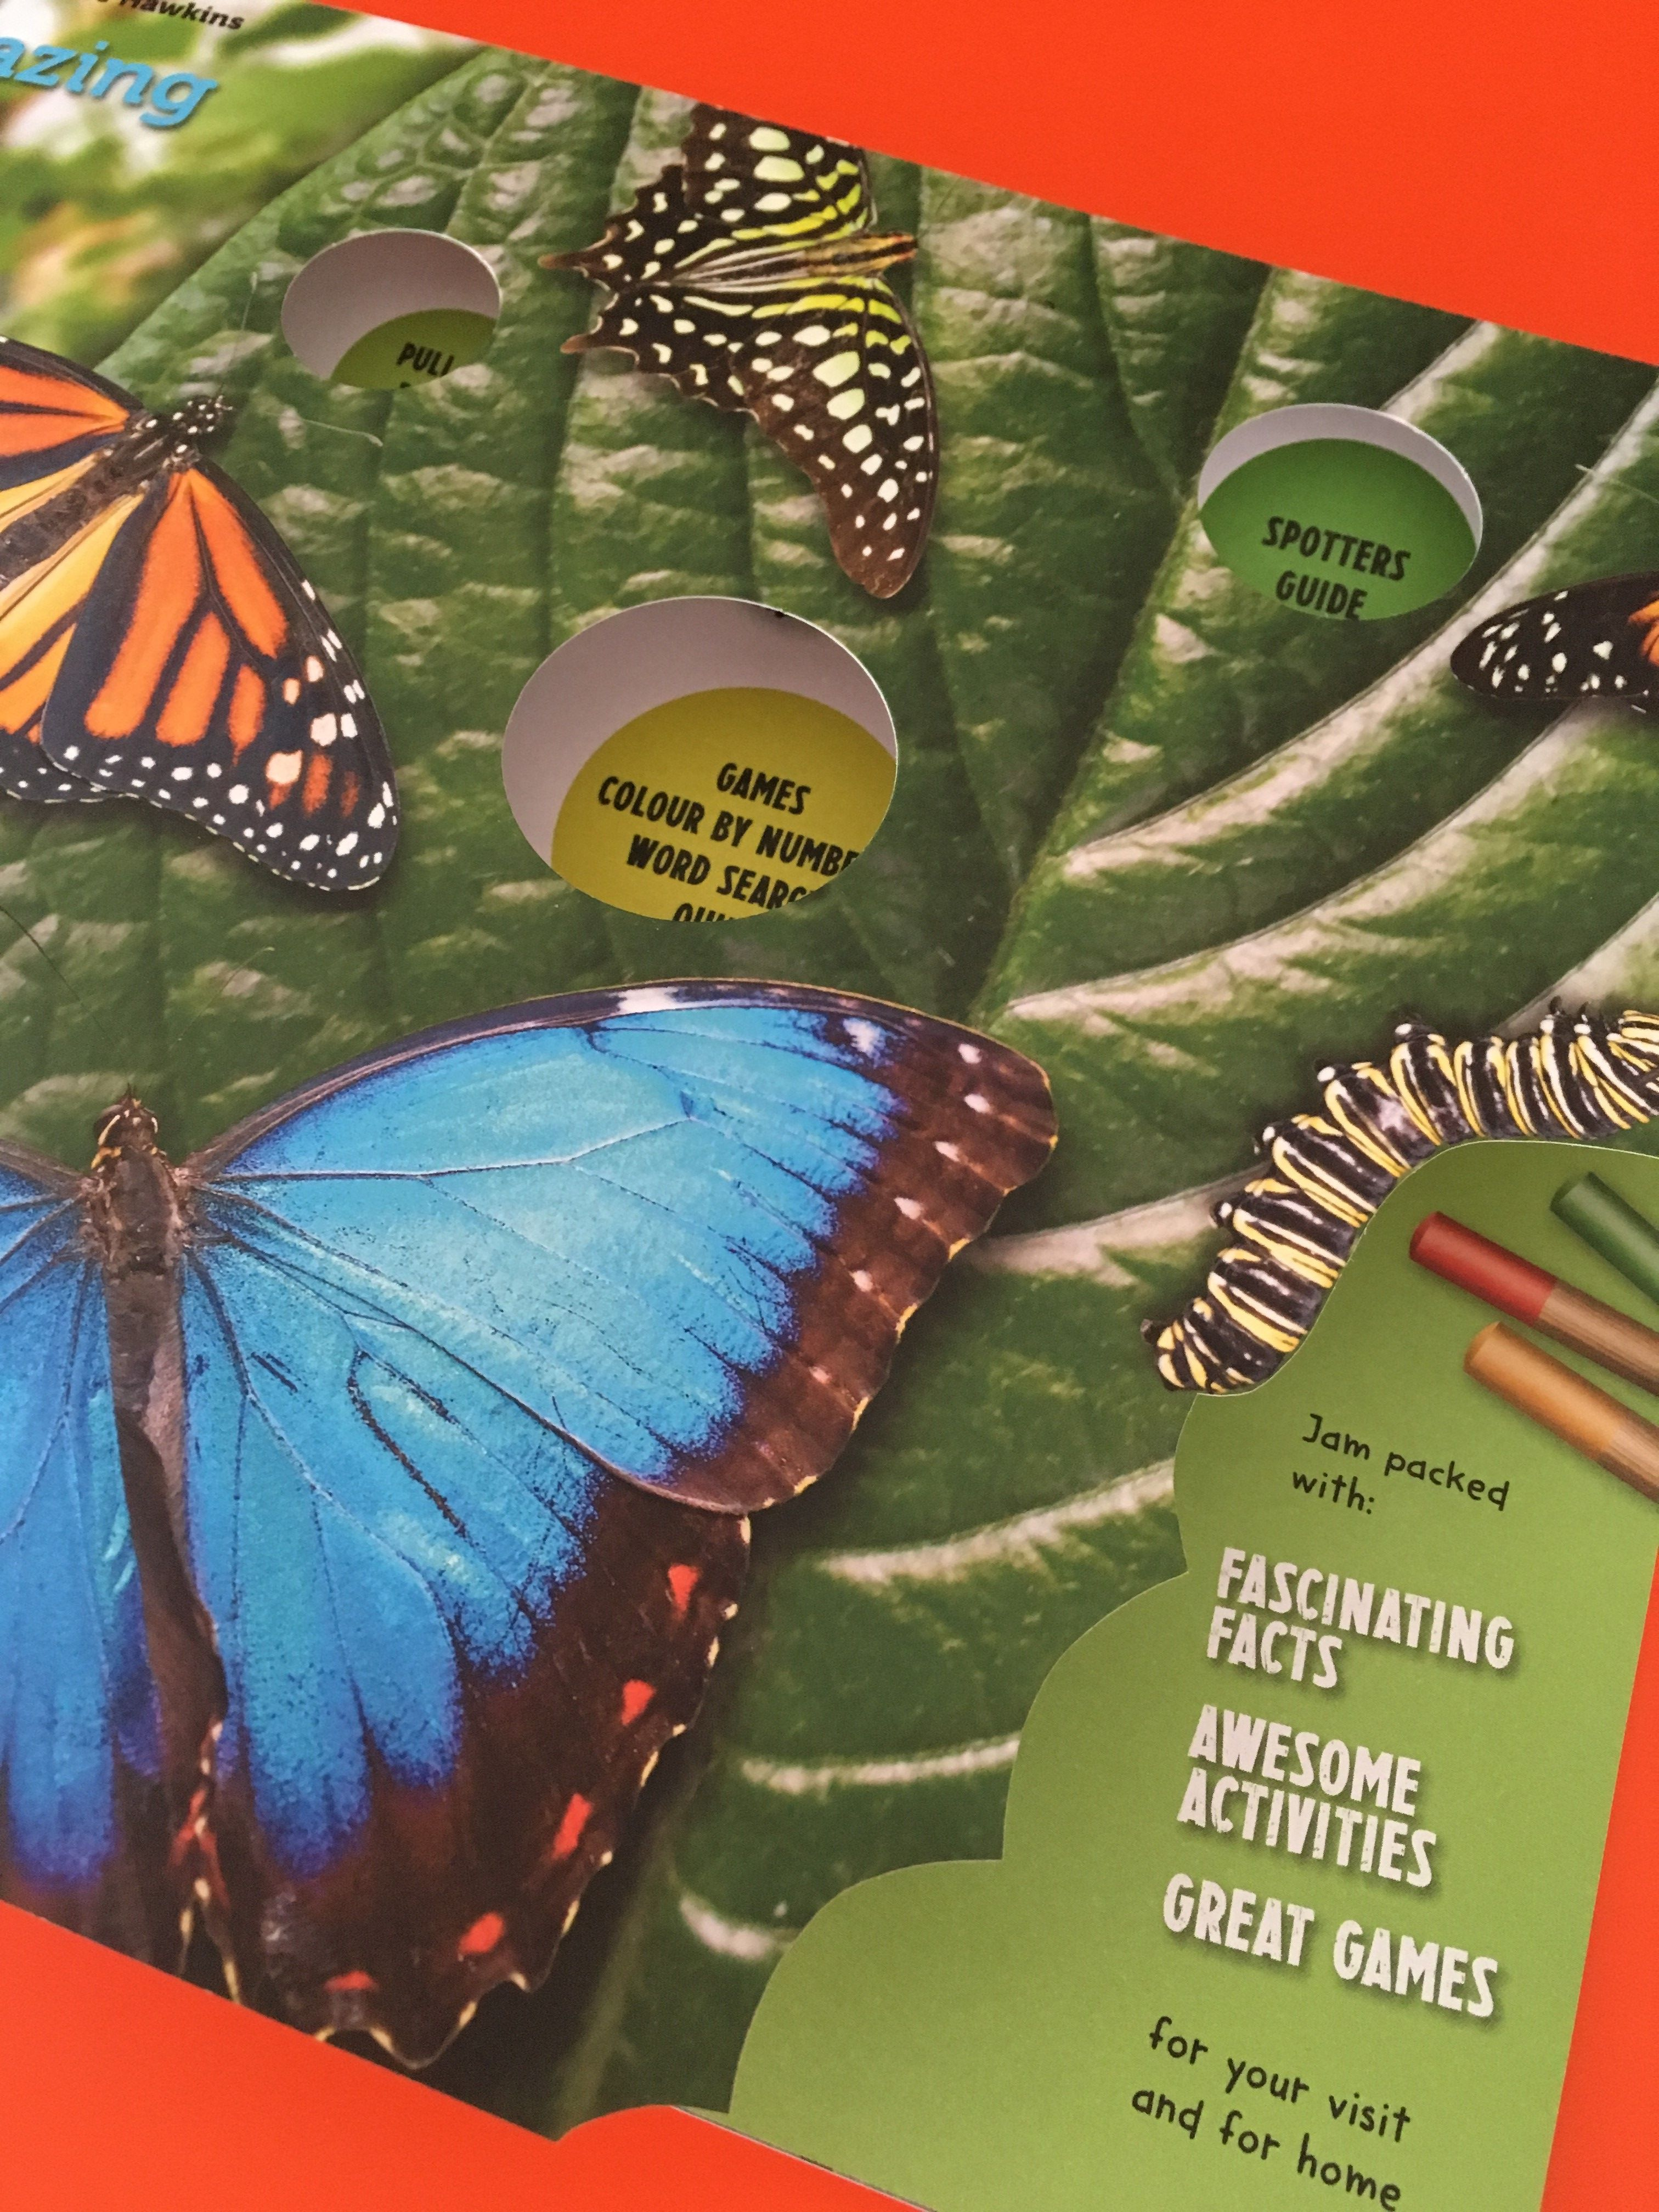 Butterfly guide by impress print services matt laminate